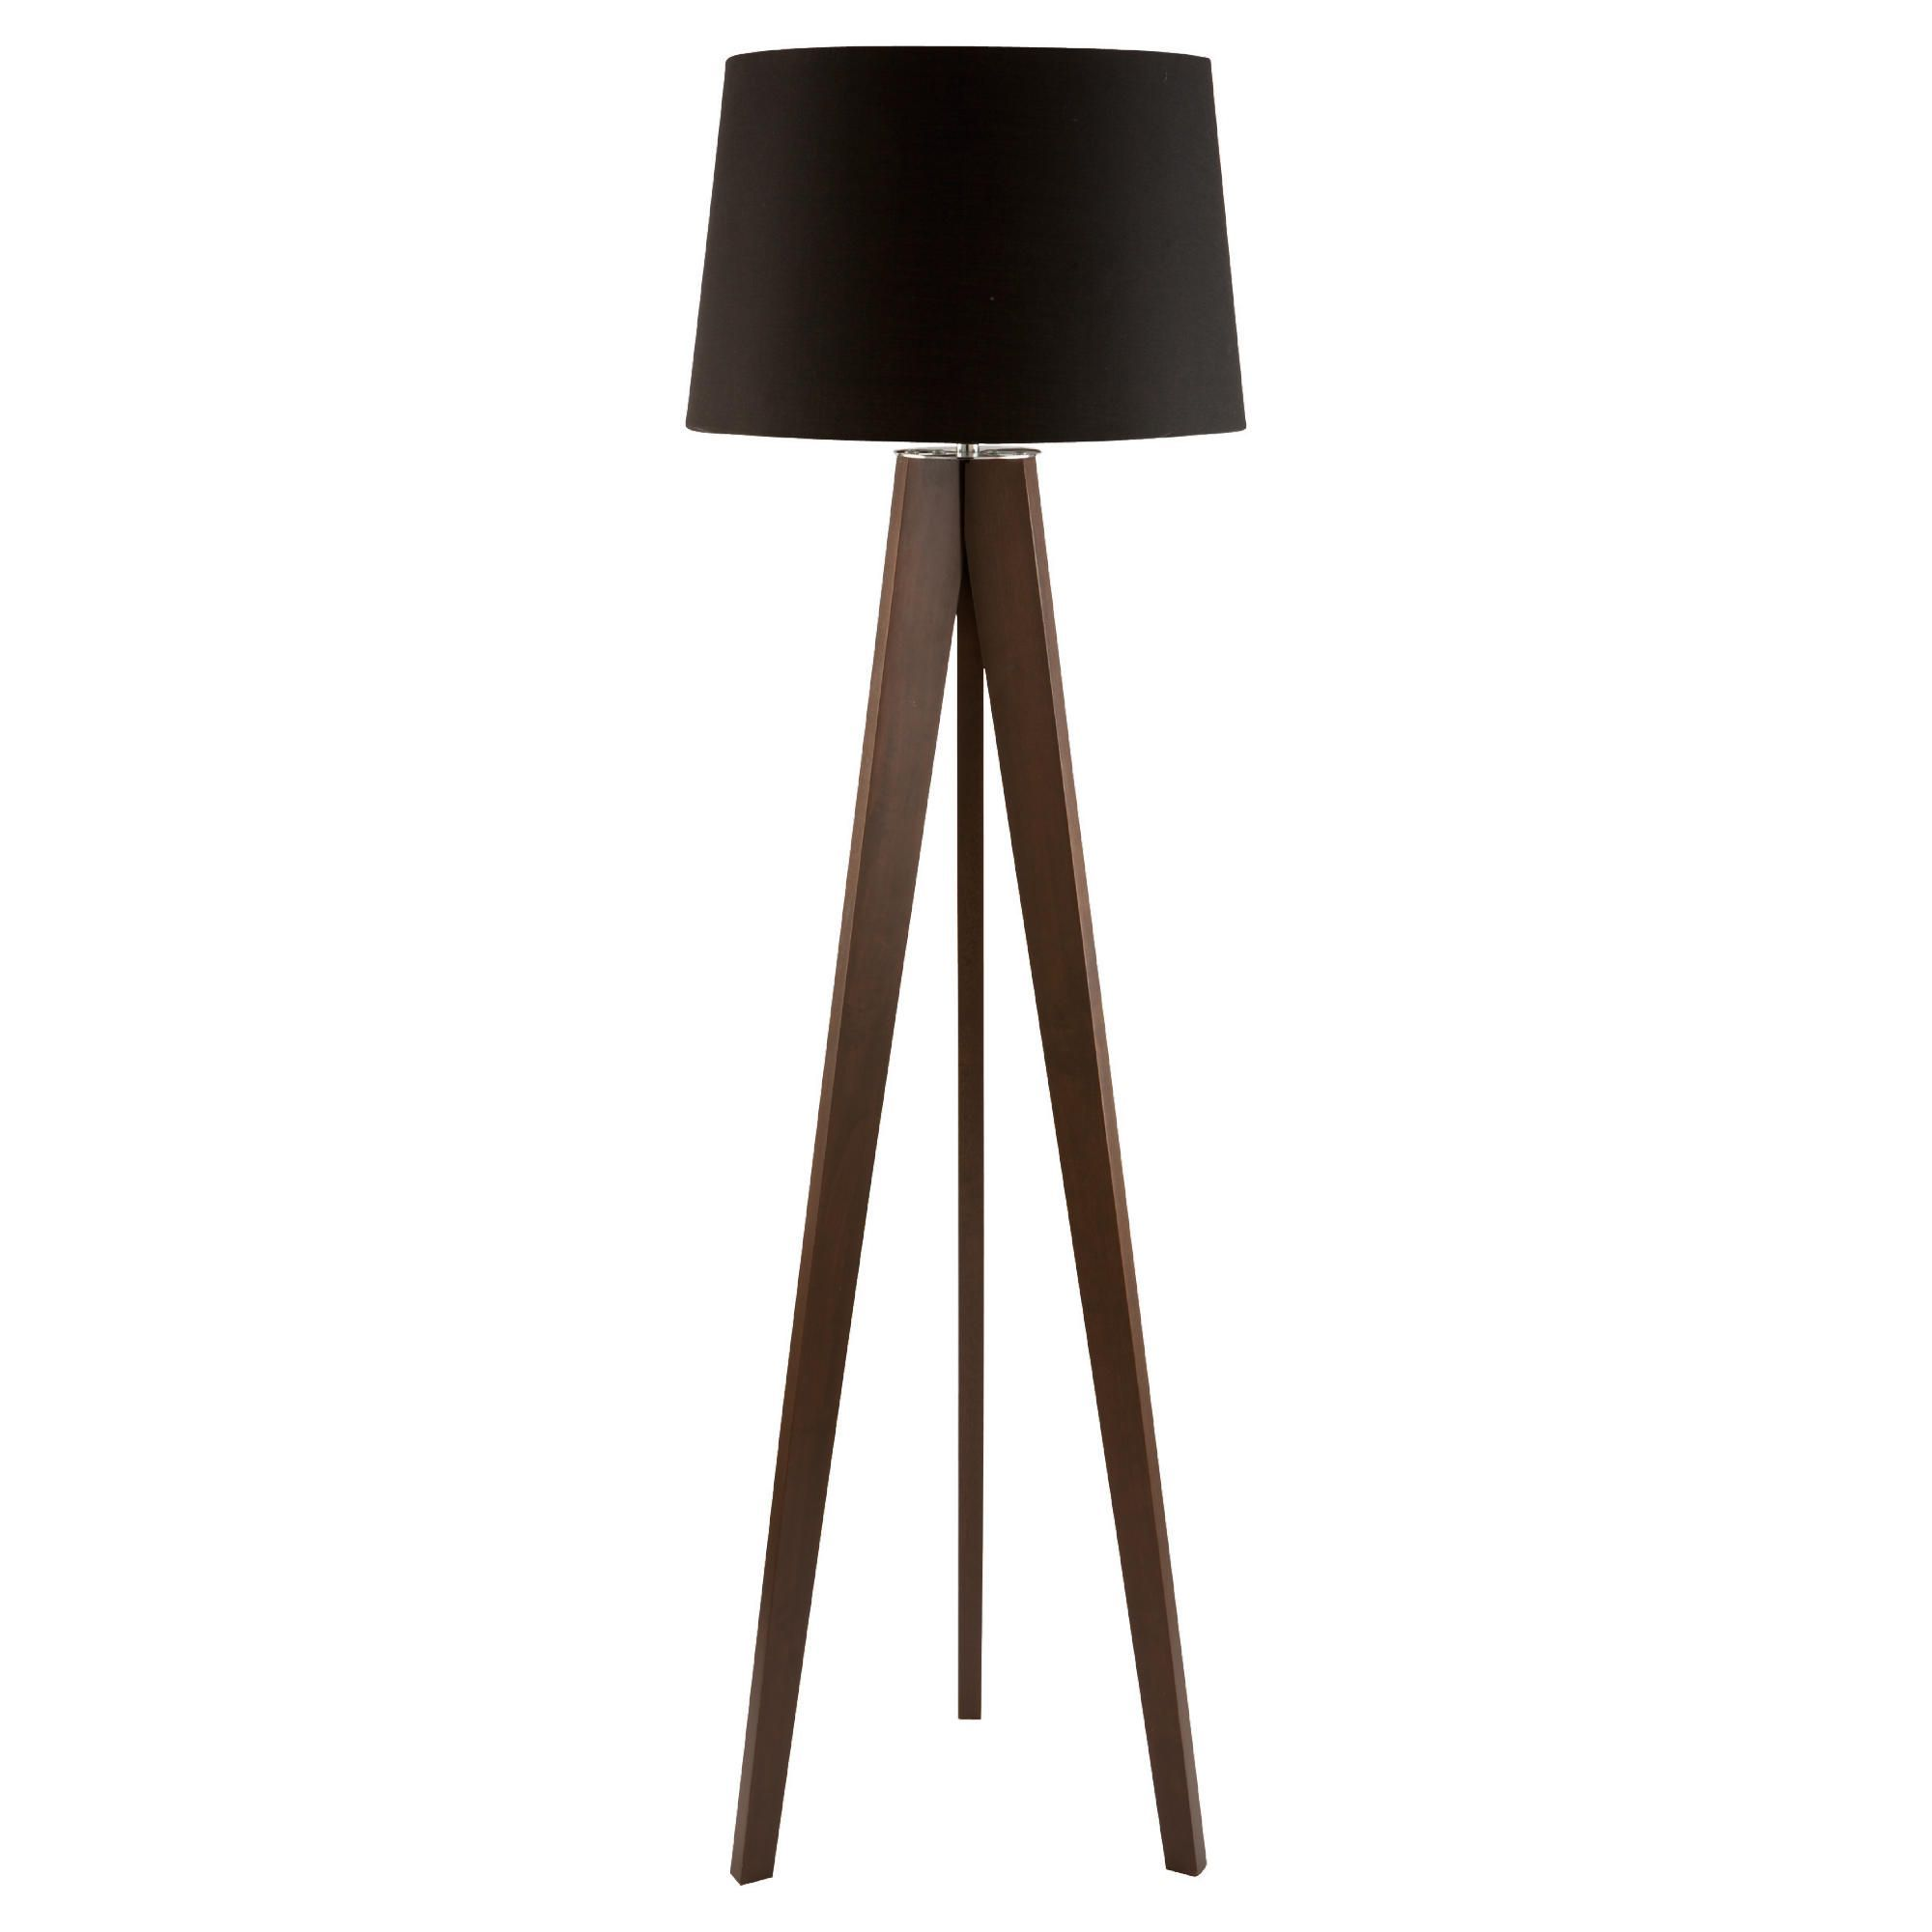 Floor Lamp Wooden Tesco Tripod Wooden Floor Lamp Dark Wood Black Shade